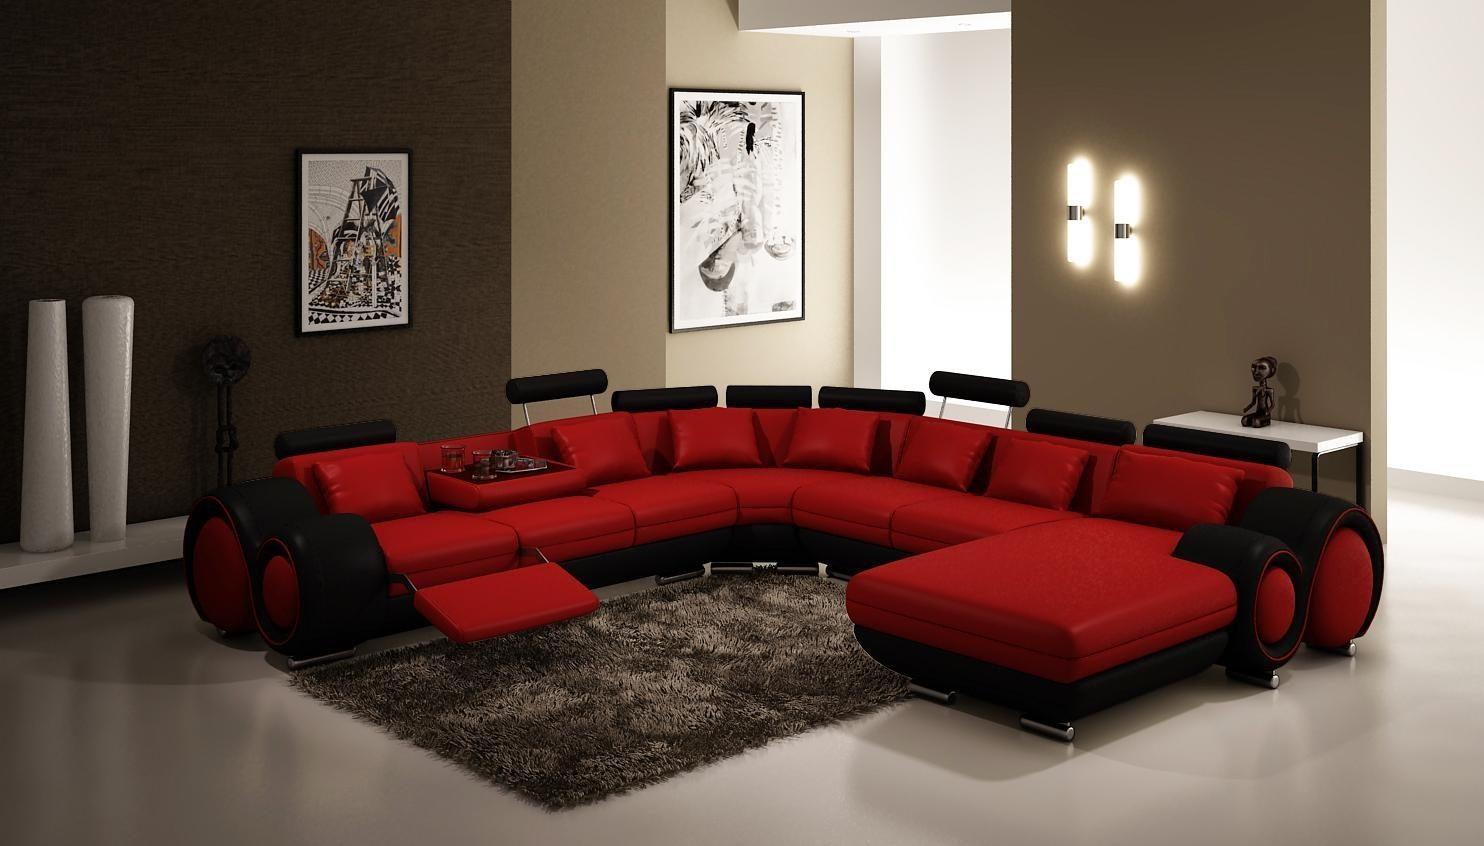 Three Seat Dark Red Leather Sofa With Panel Armrest And Dark Brown Within Dark Red Leather Couches (Image 20 of 20)